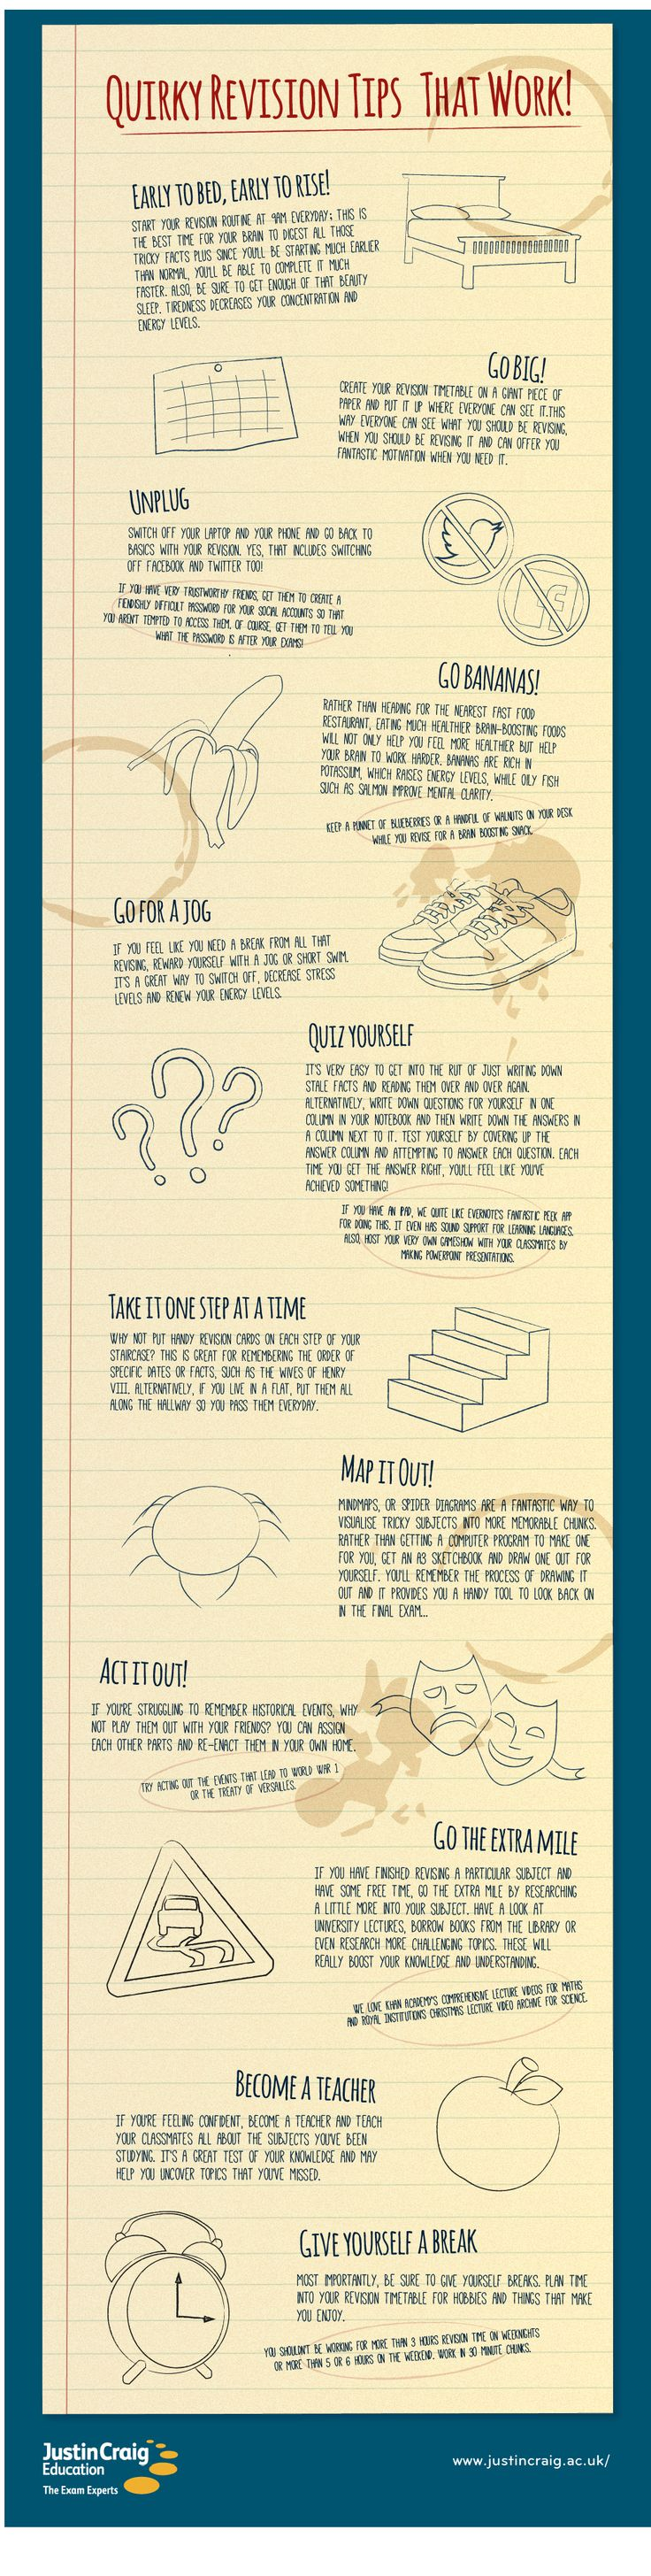 Quirky Revision Tips That Work! infographic | Love infographicsSubmit & share infographics - Infographics Submission Site & Community